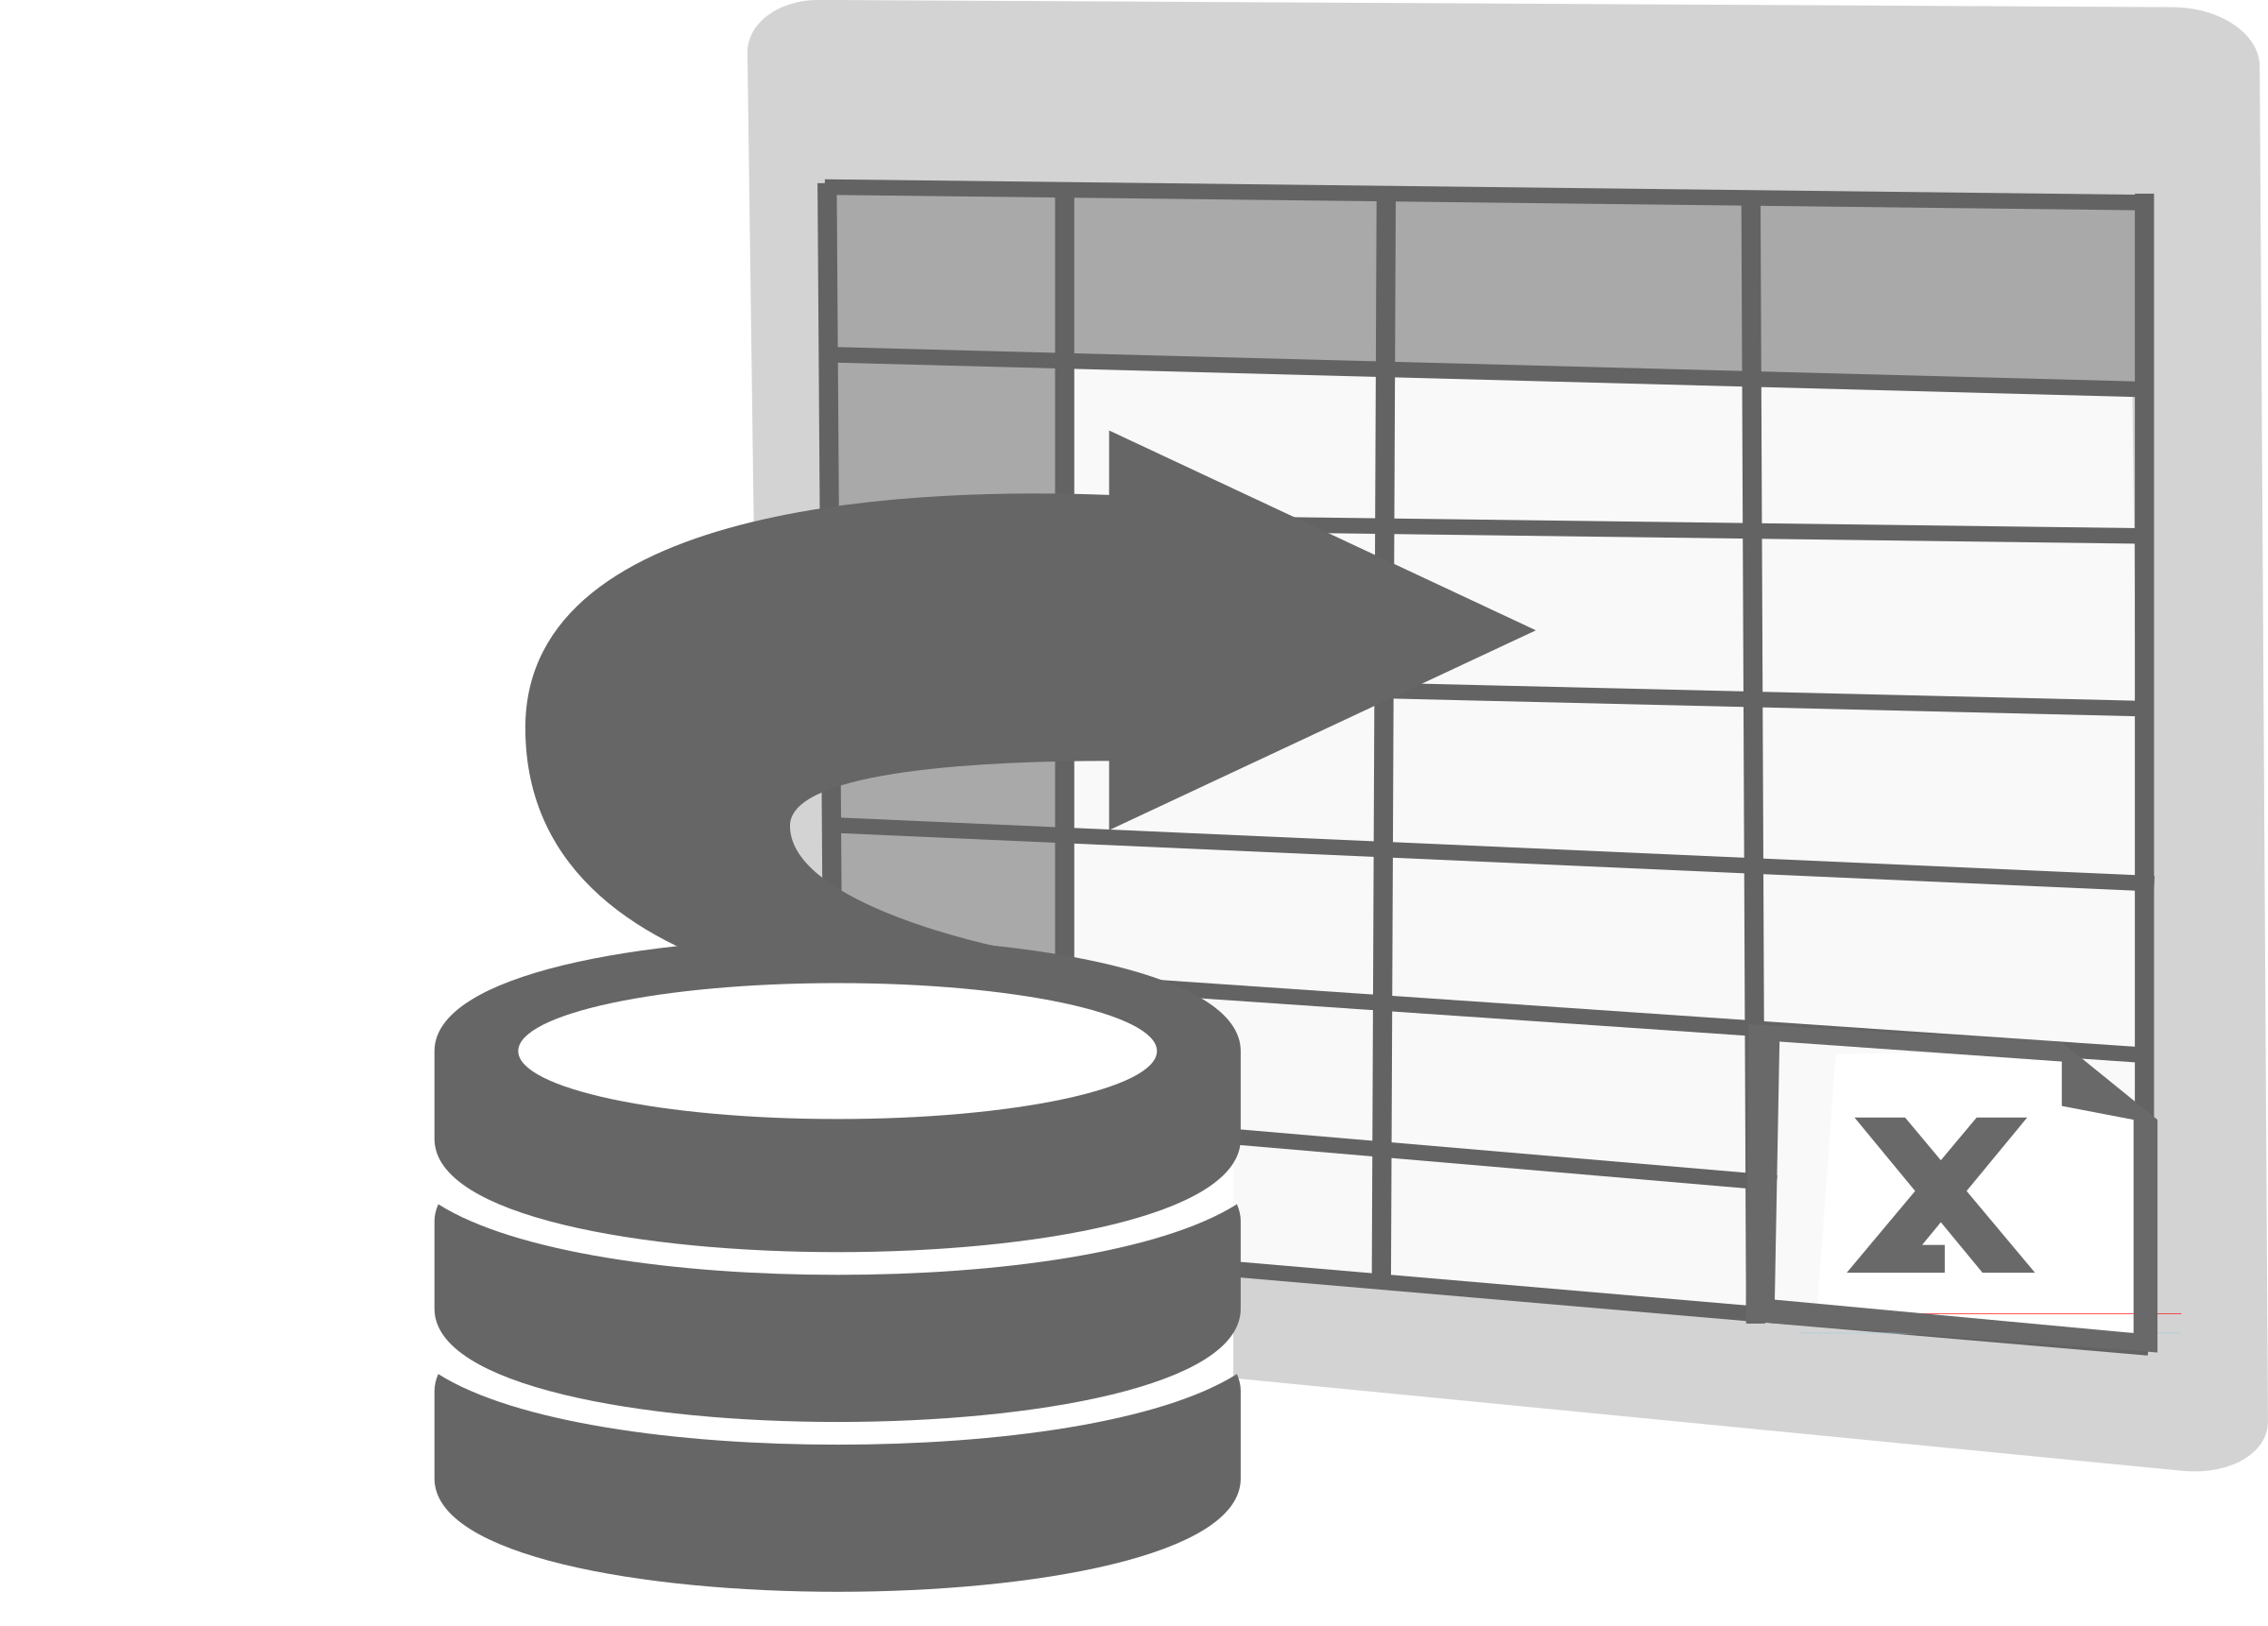 animated clipart for excel - photo #21